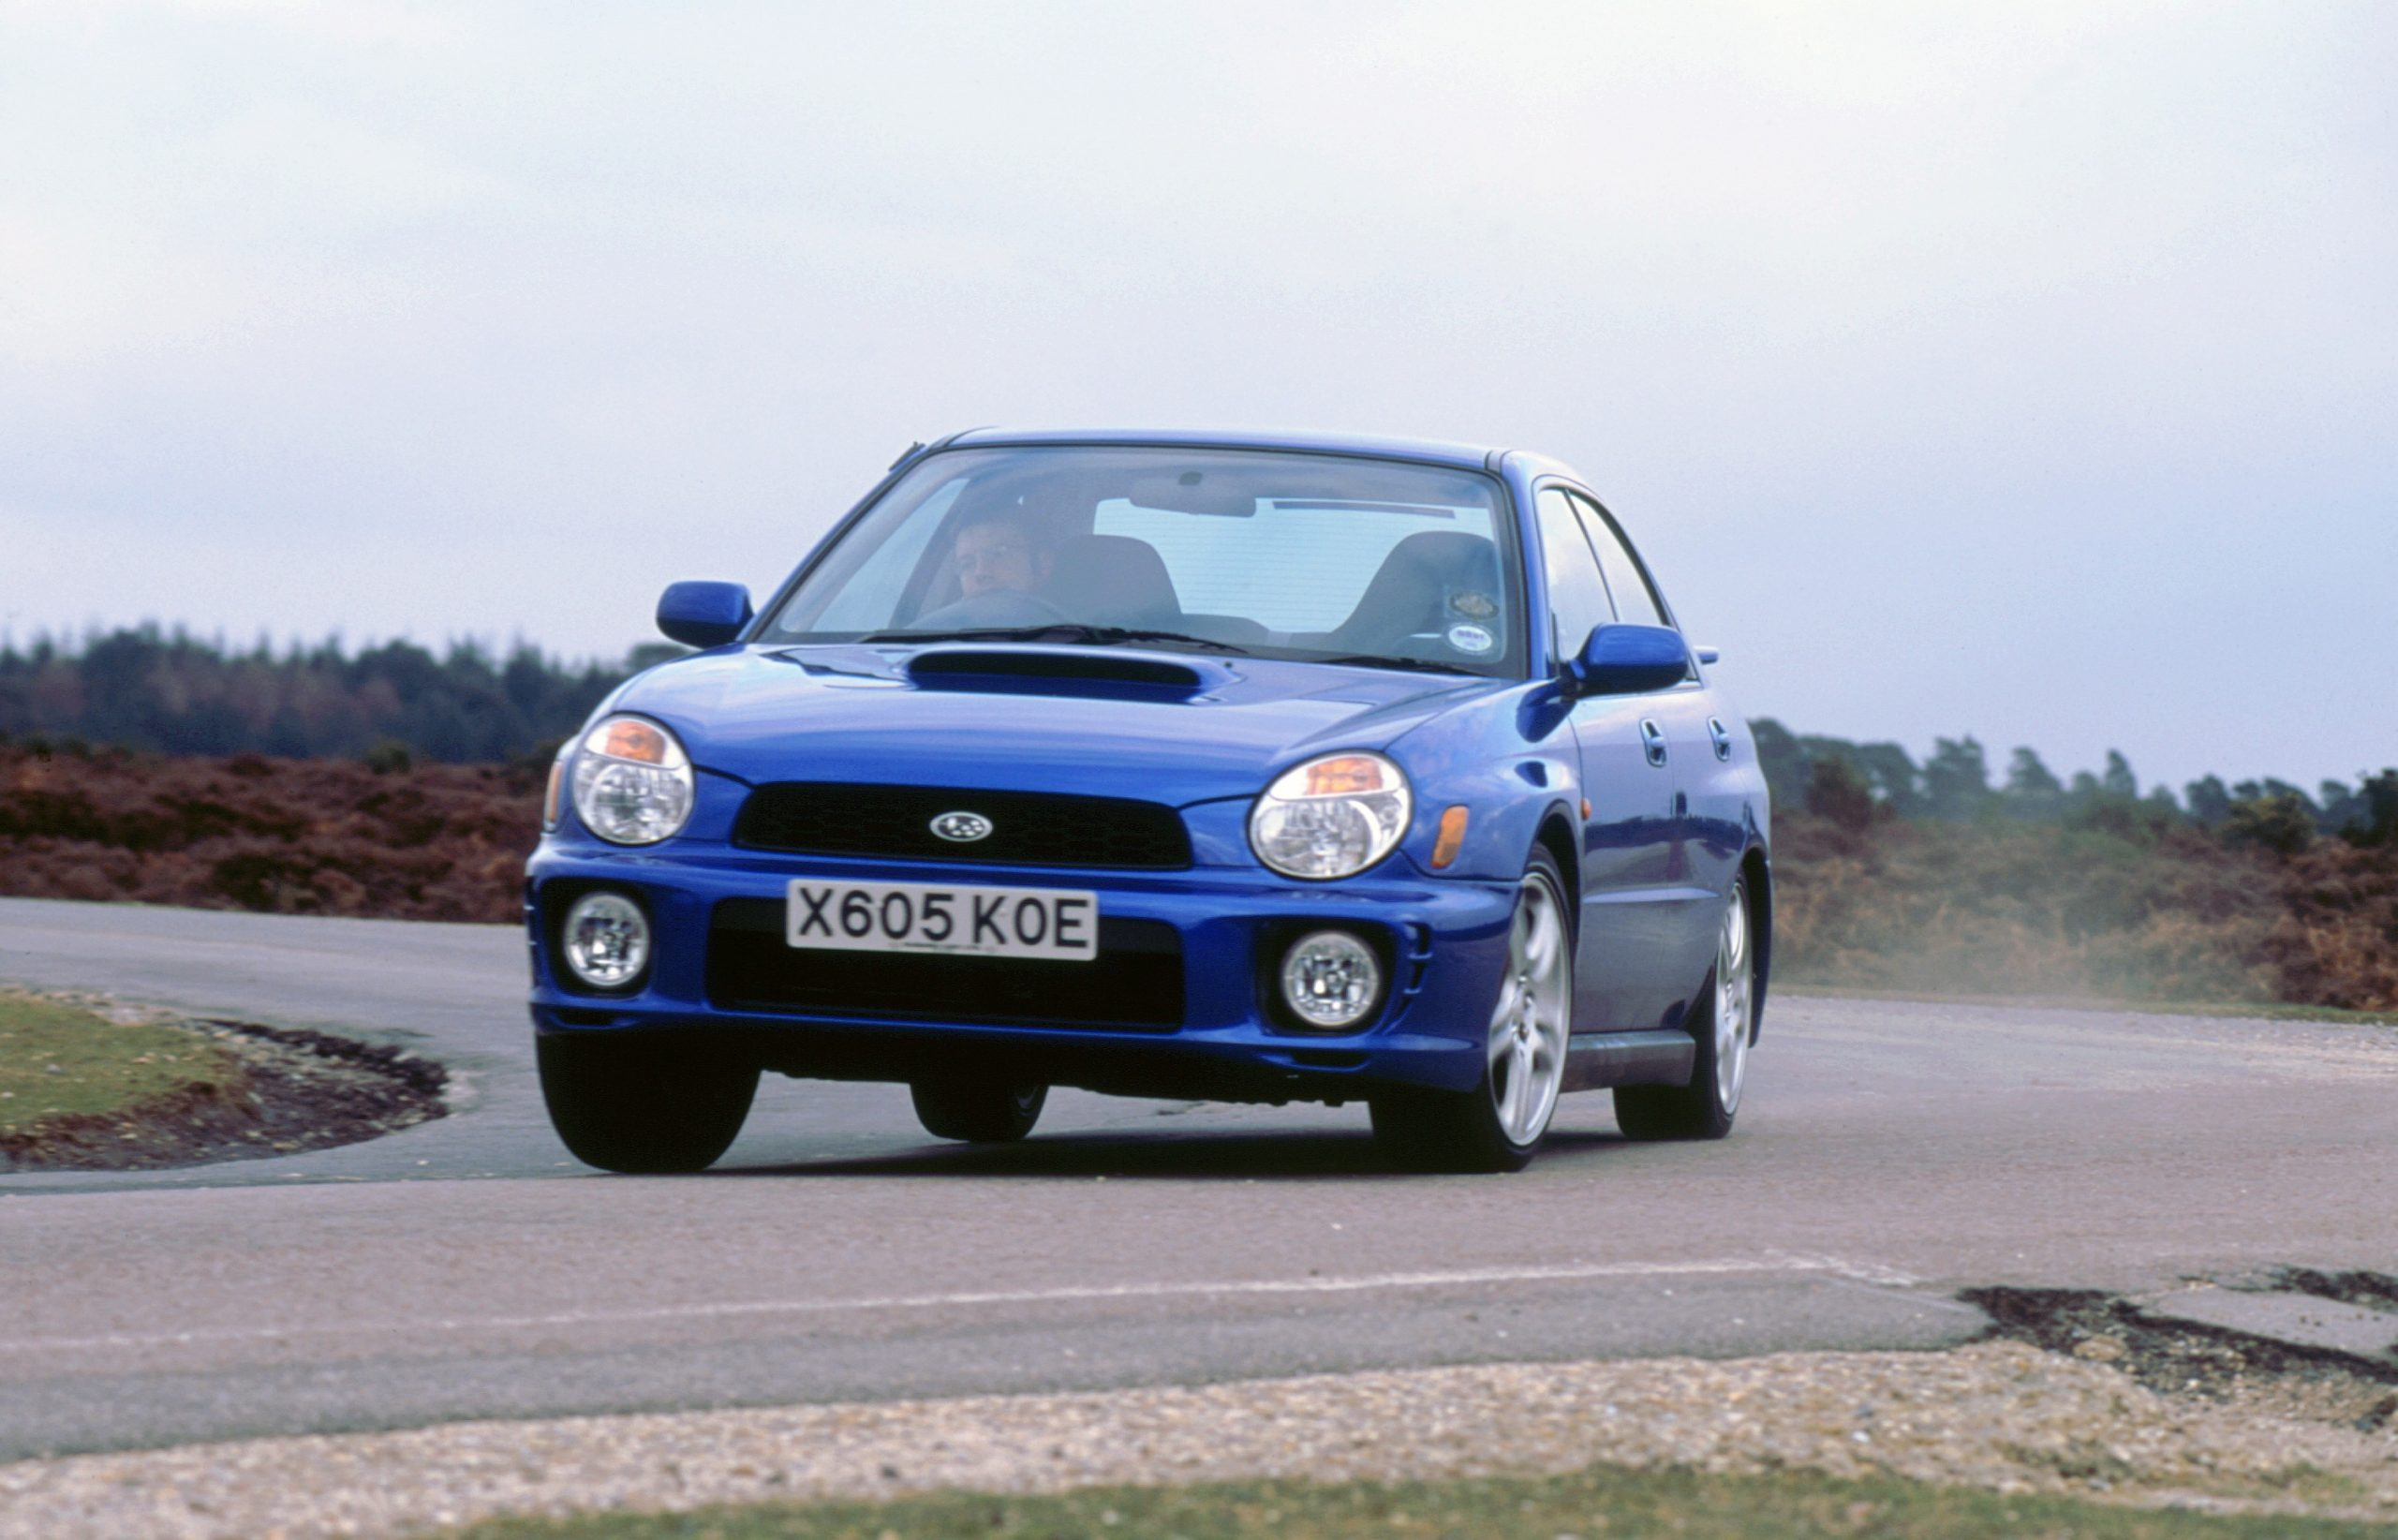 A blue Subaru WRX cornering at full speed, shot from the 3/4 angle